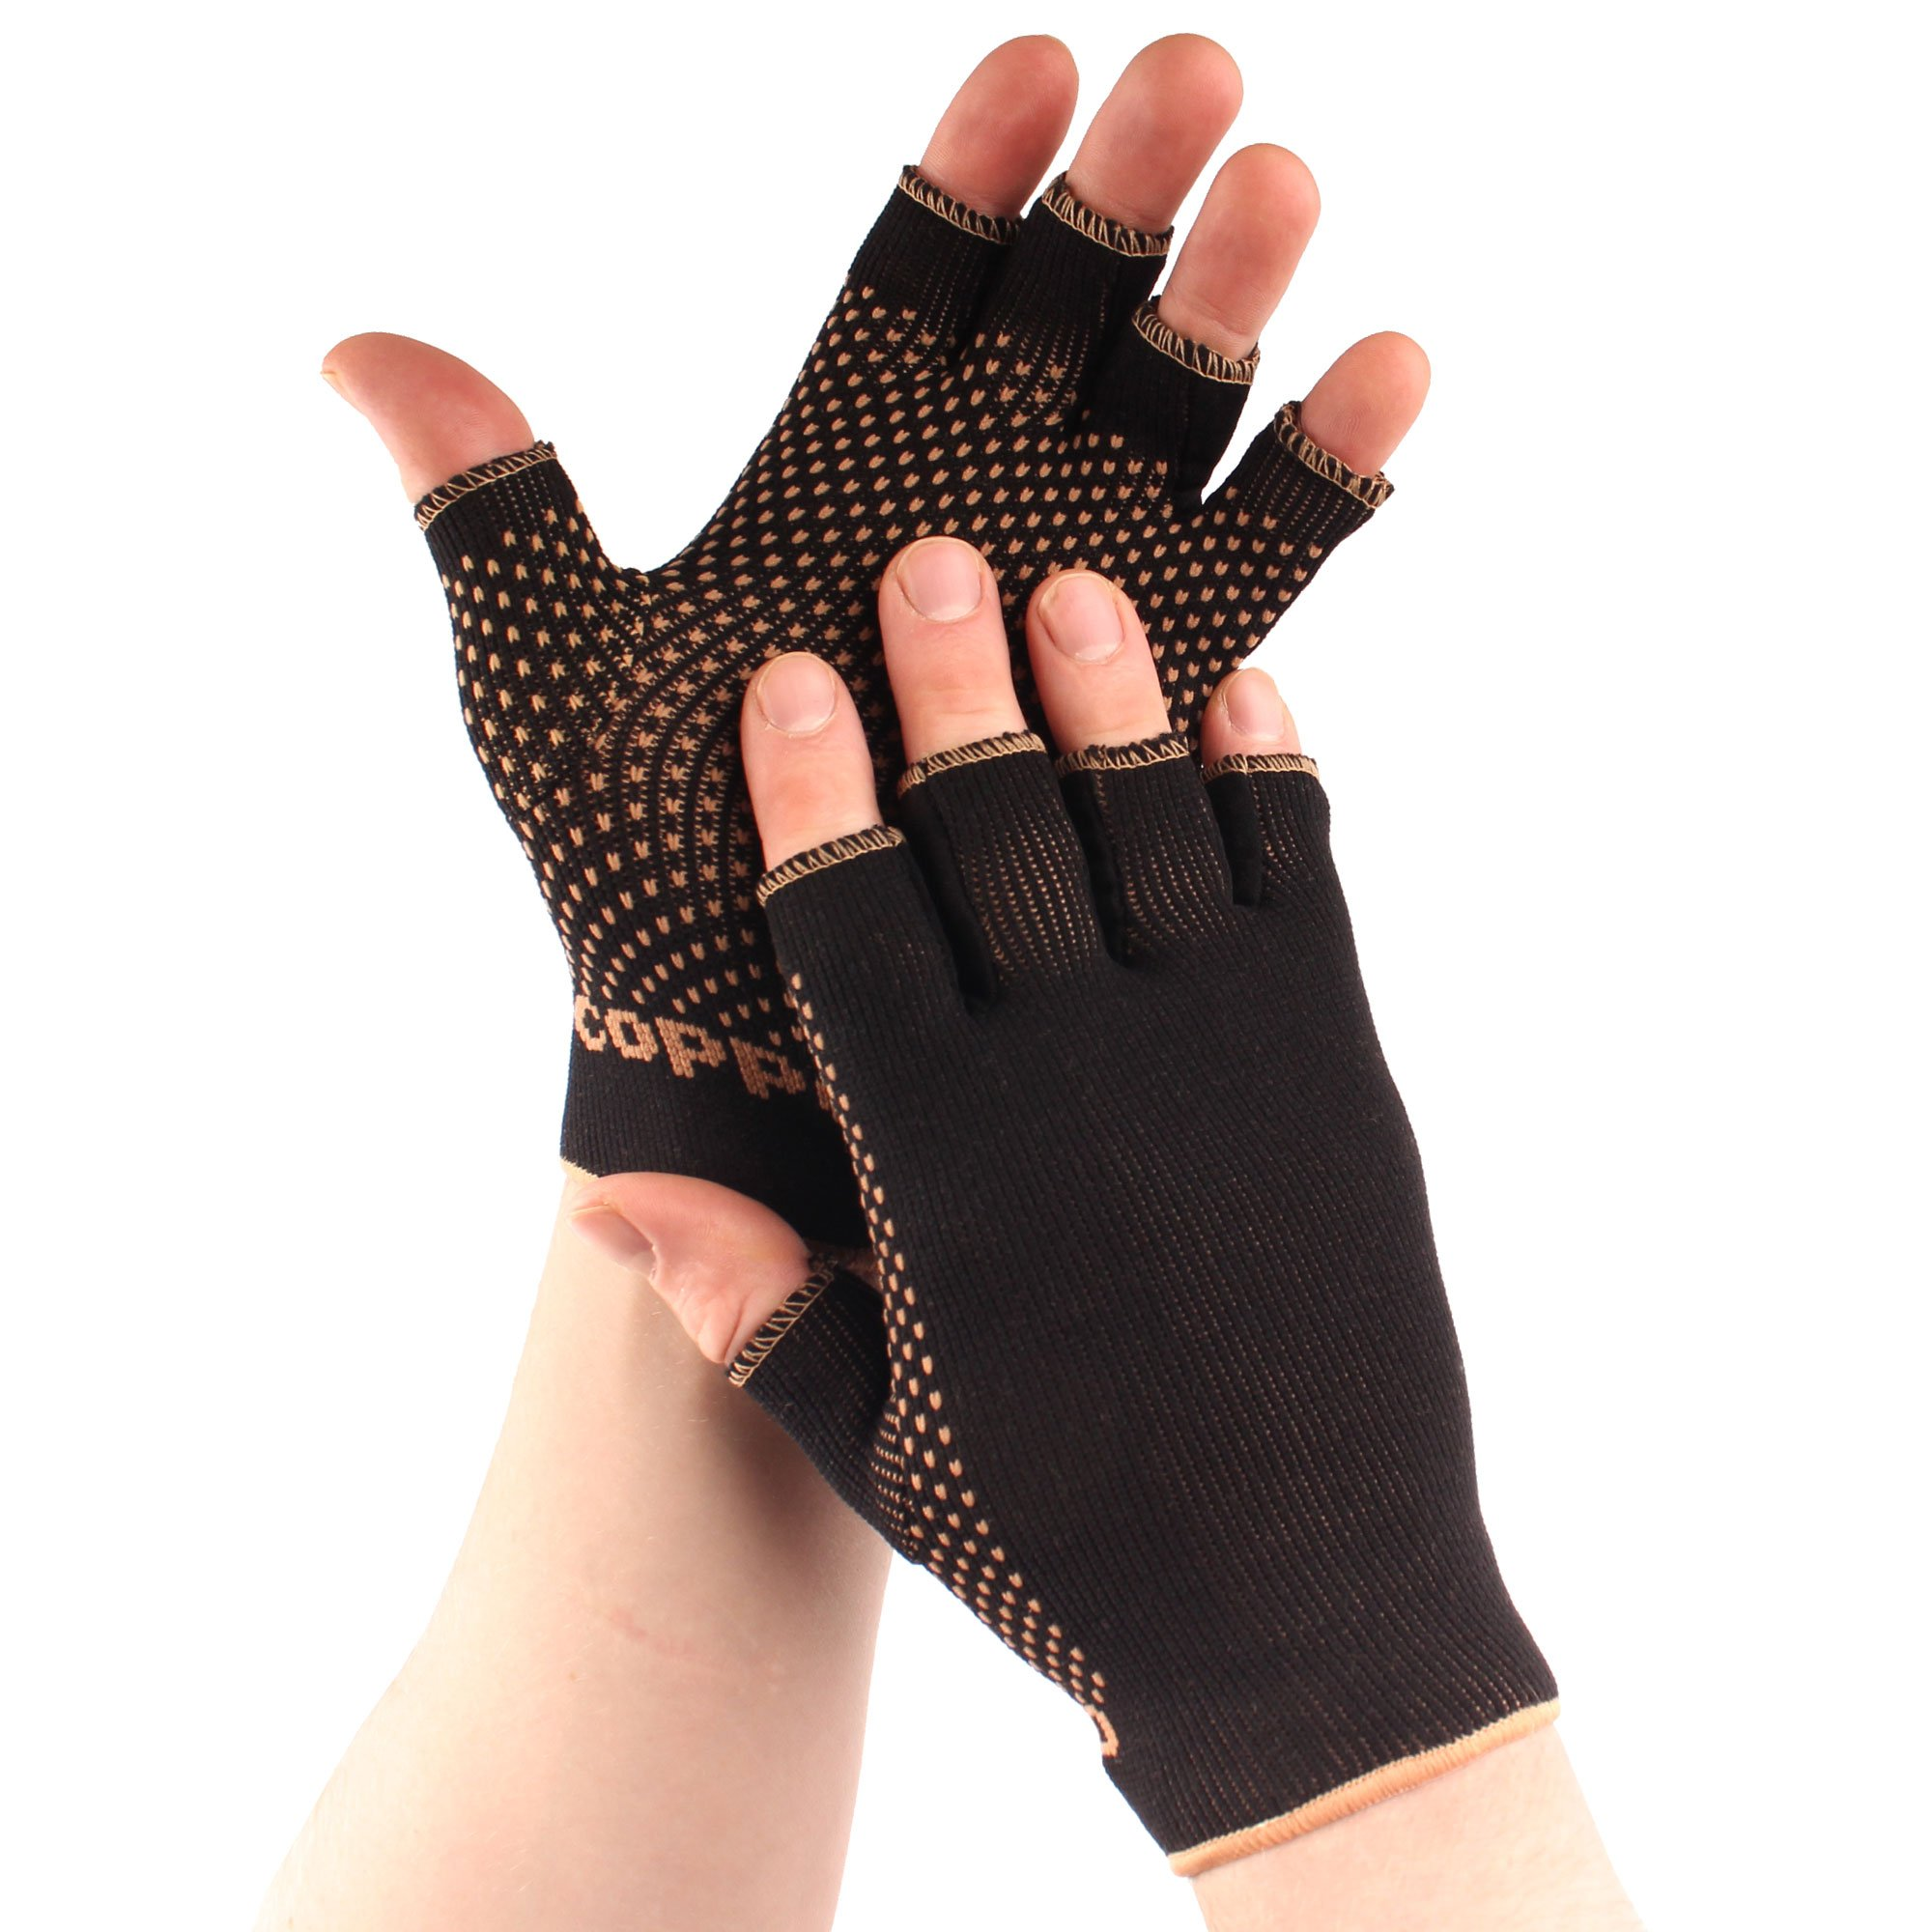 Copper D 1 Pair Black Copper Rayon from Bamboo Copper Compression Gloves for Relief from Injuries, Arthritis, and more or Comfort Support for Every Day Uses, Small Medium